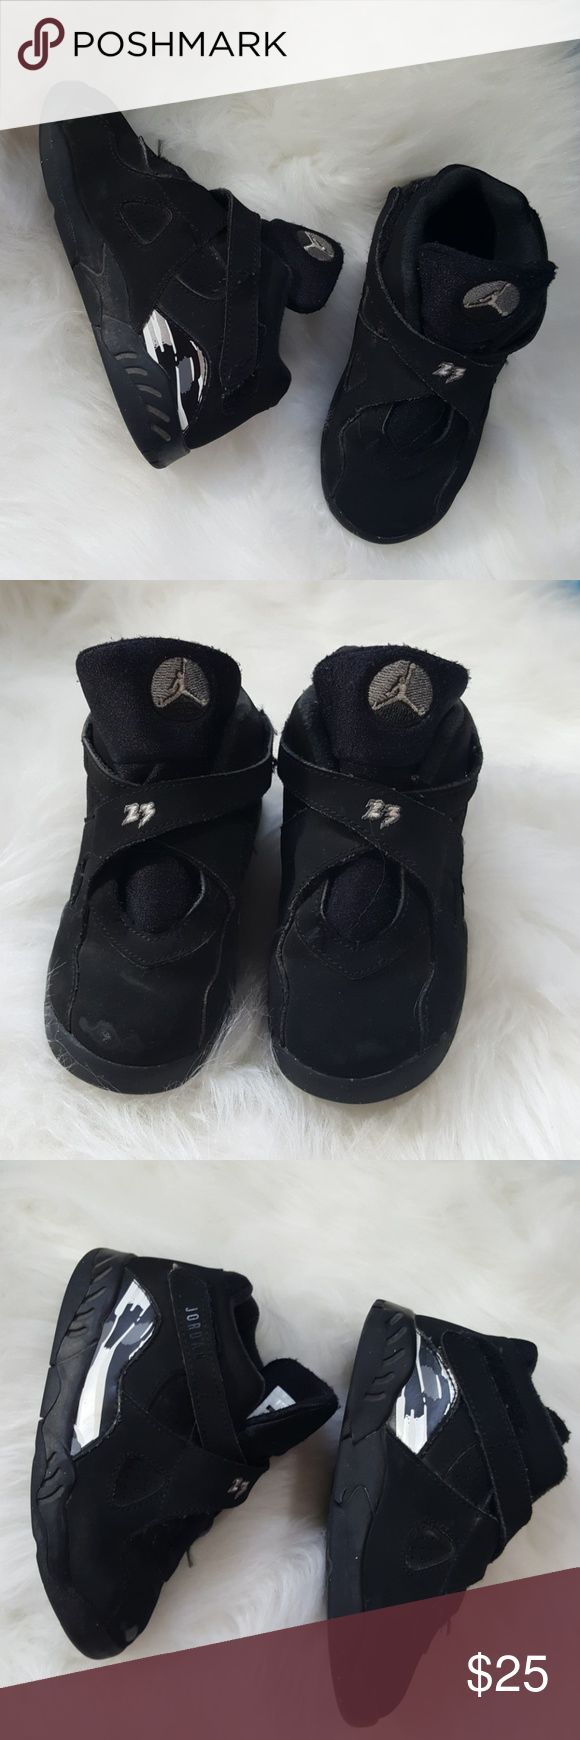 9c toddler jordans velcro Size 9C Jordans with velcro closure. Manufactured in 2015. Souls firmly attached for plenty of tread on the bottom from scuffing is pictured on the toes otherwise good condition Jordan Shoes Sneakers